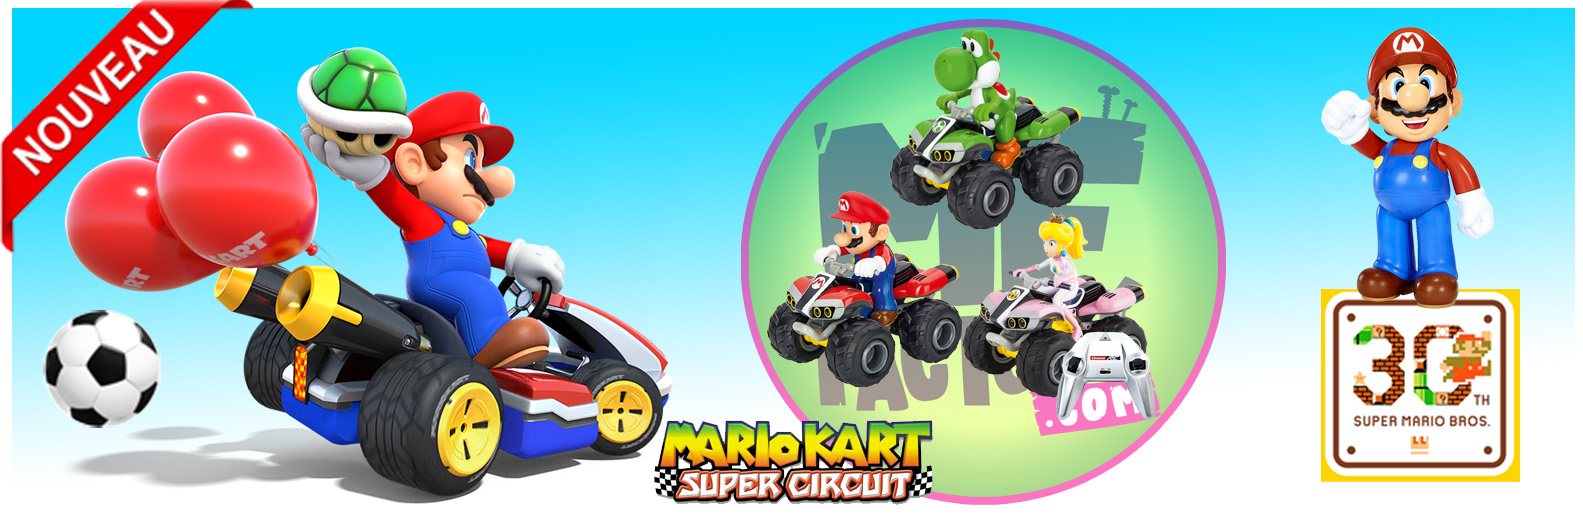 bandeau mario kart super circuit MF Factory